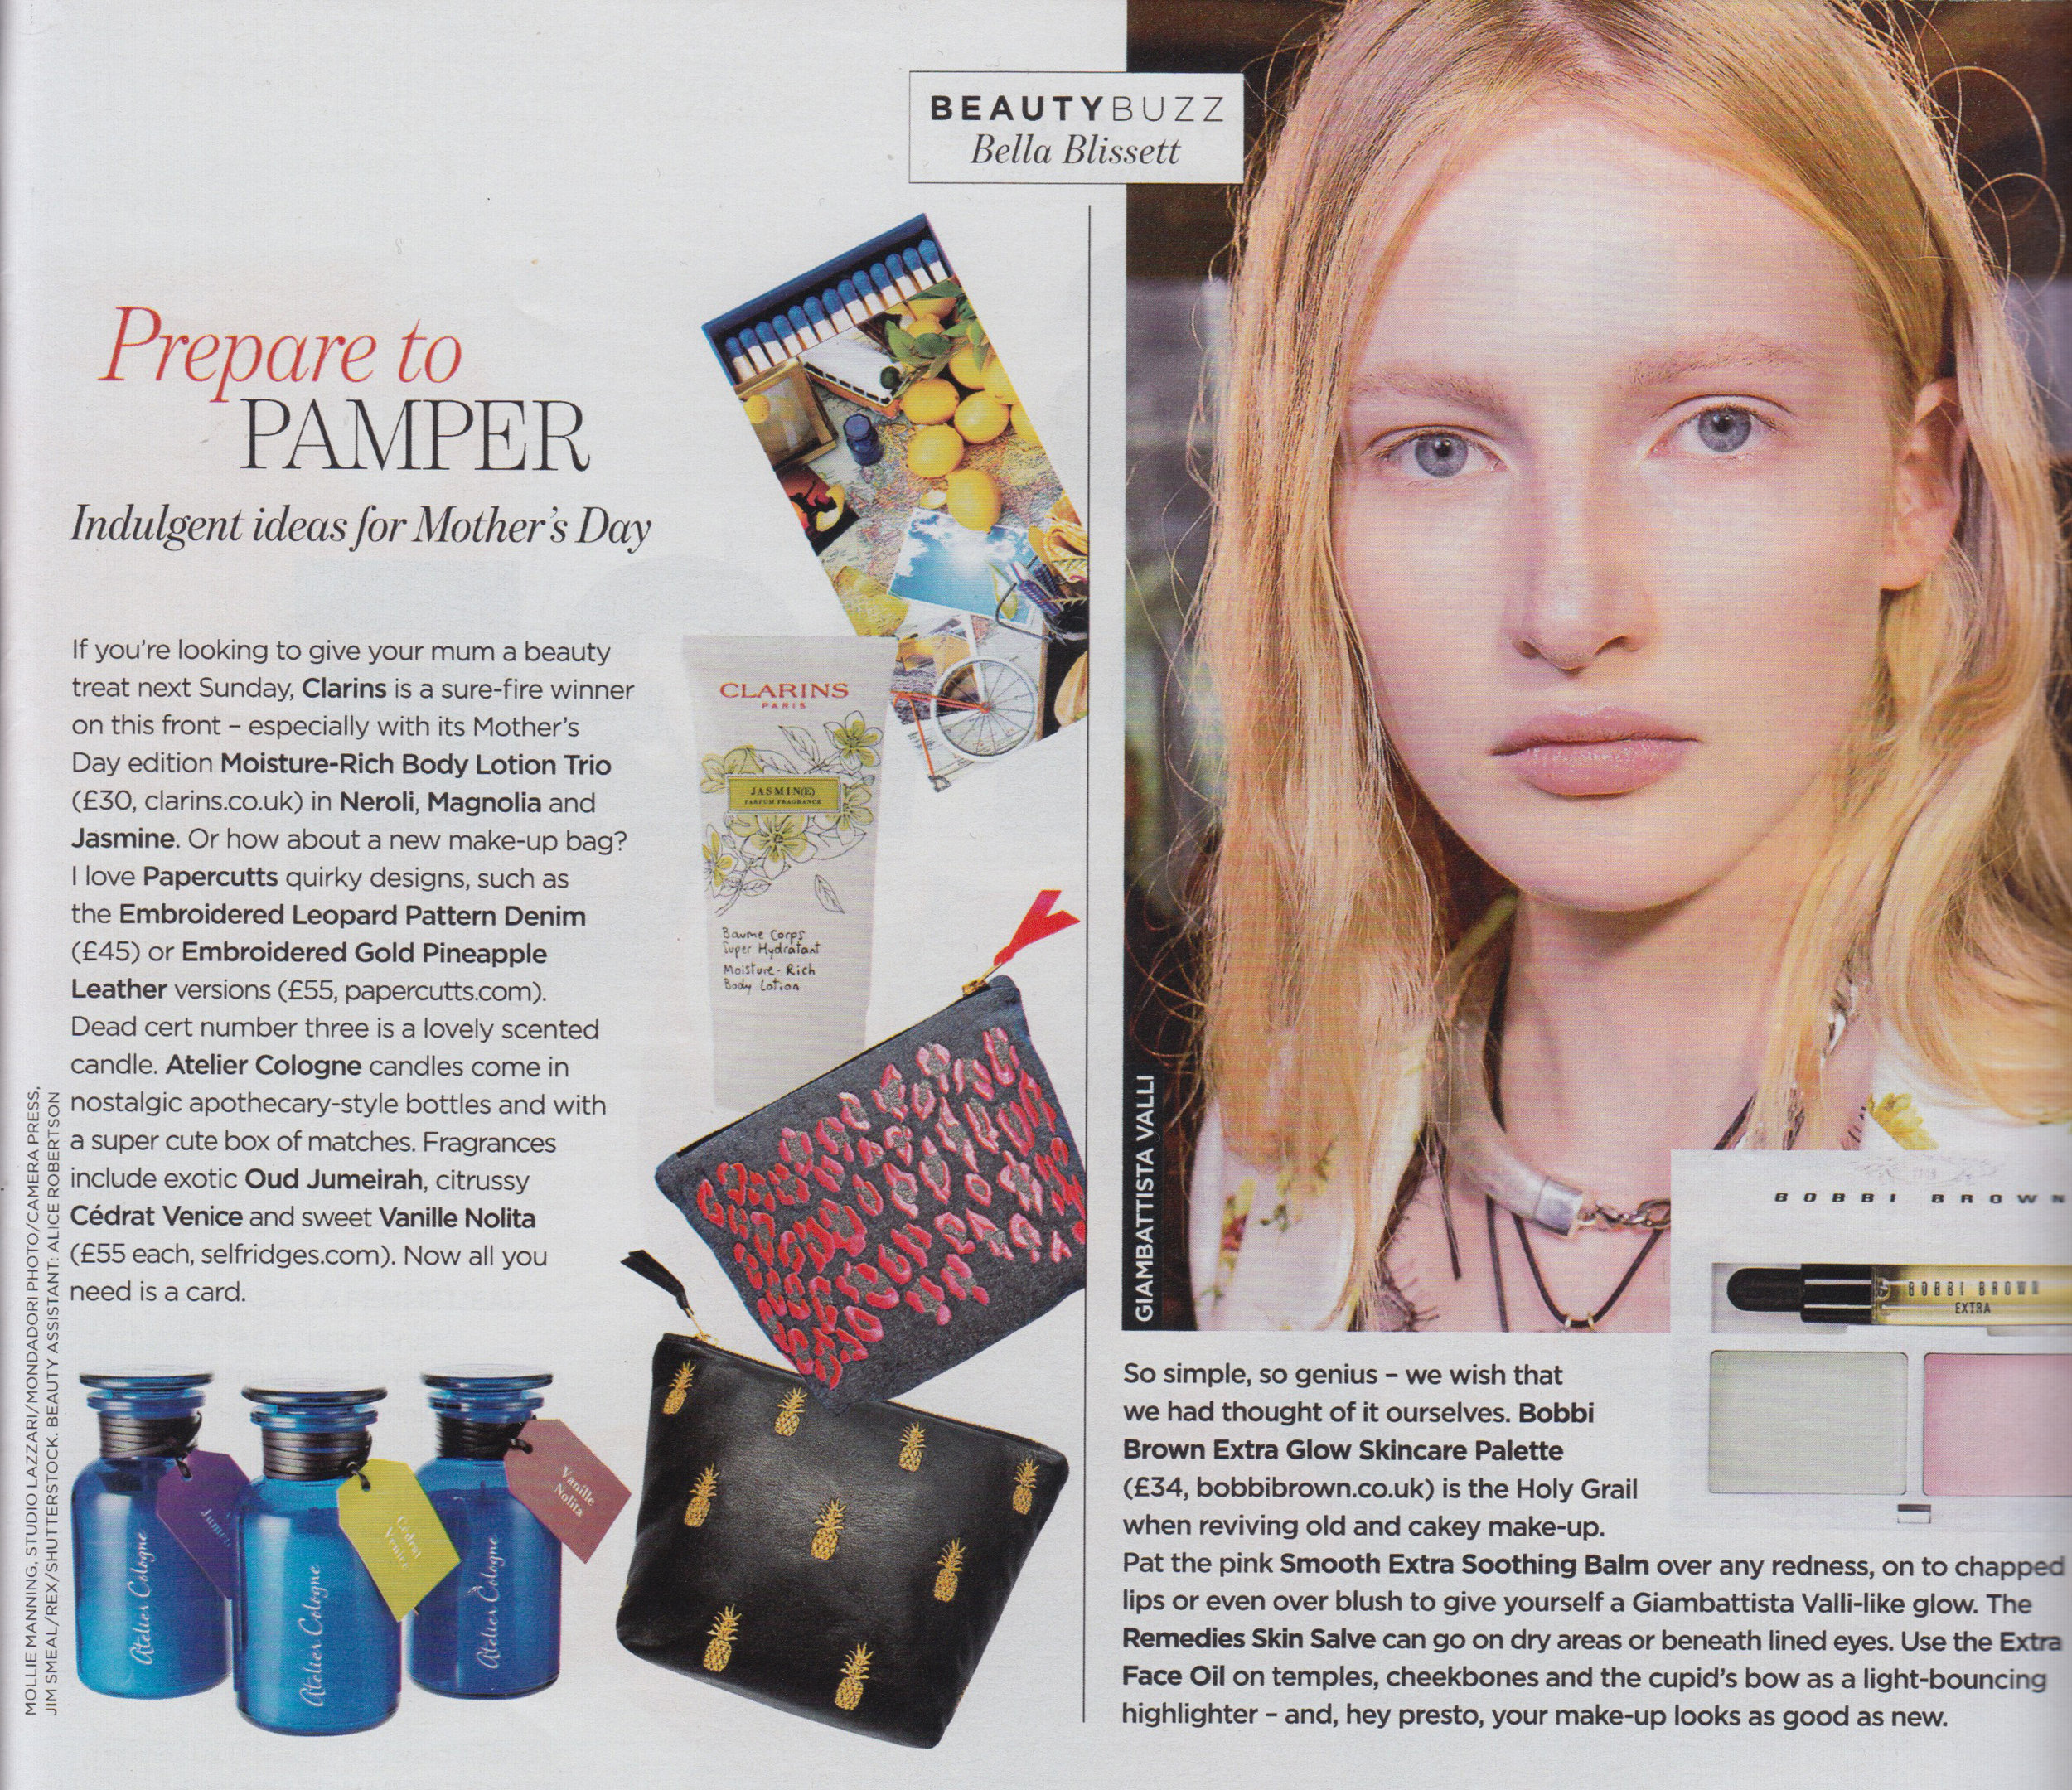 You Magazine- Beauty Buzz - Featuring the 'Pineapples' and 'Carla' make up bags in a round up of indulgent gift ideas for Mother's Day. Thank you so much You Magazine!